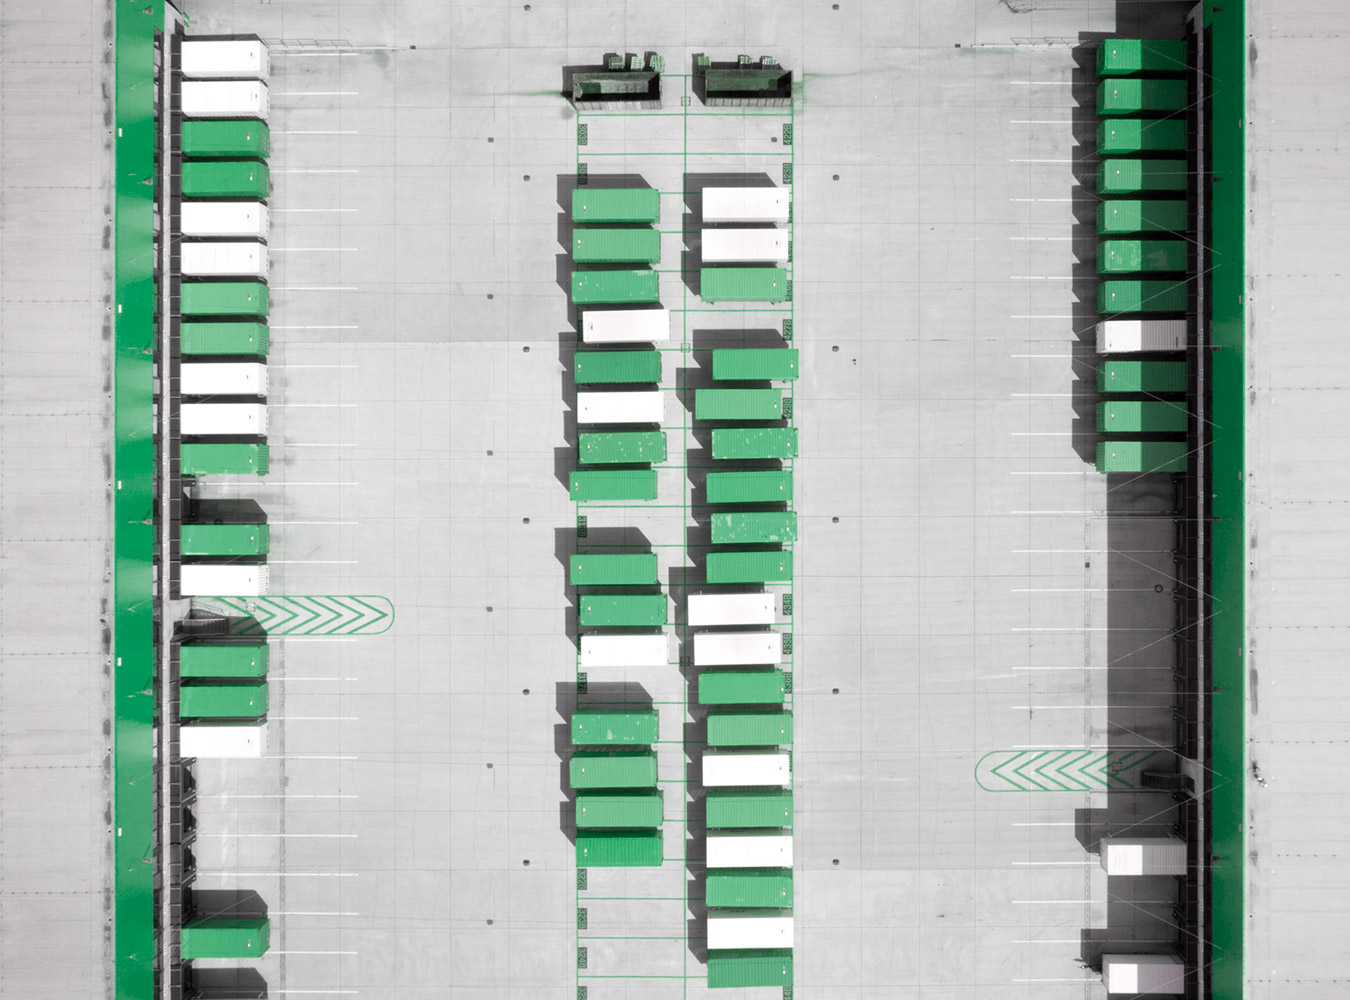 Logistics 4 Pharma - Expertise - Techology - Preview; storage from above